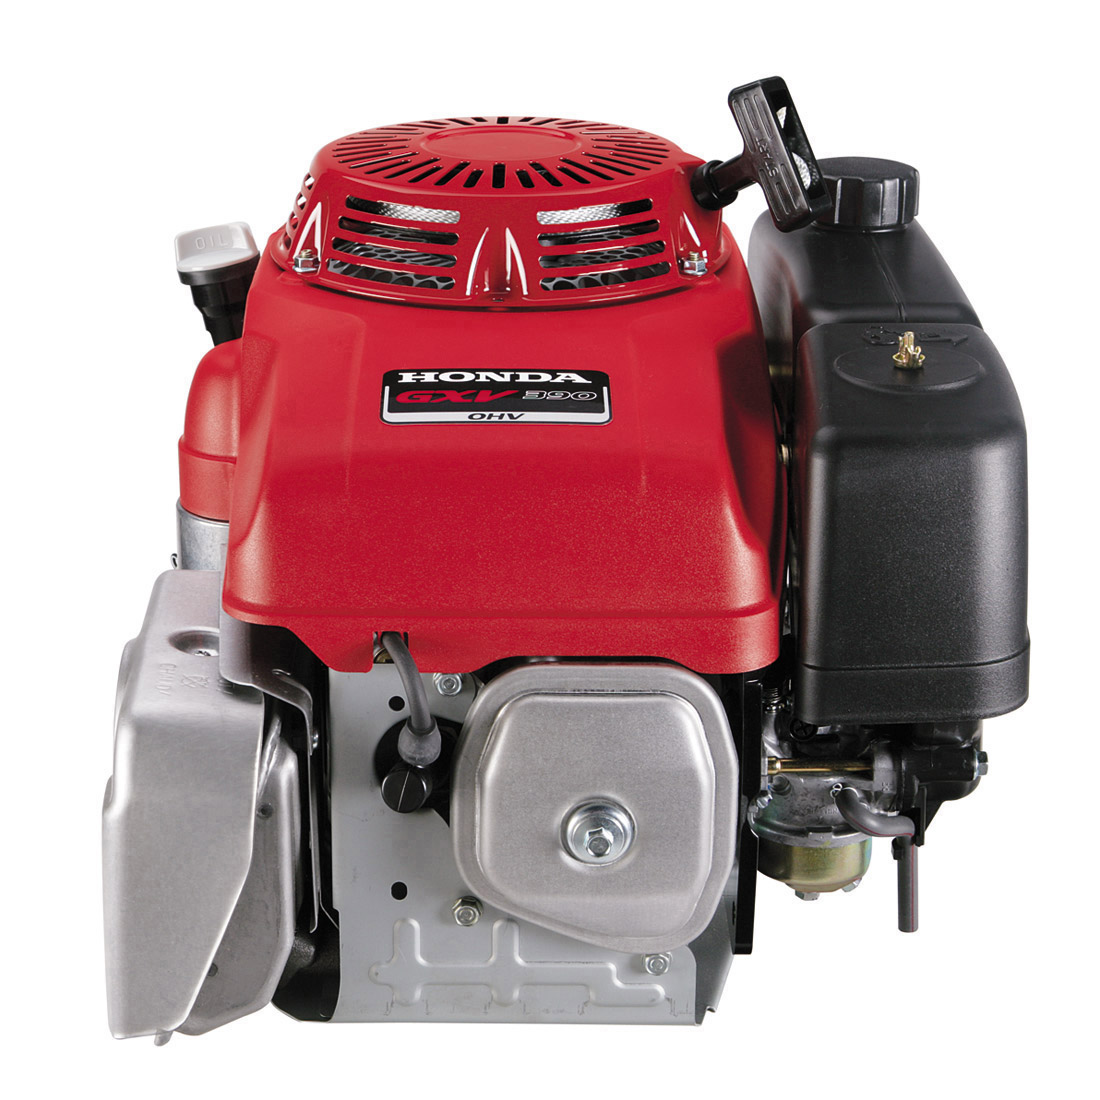 Honda Engines | GXV340 4-Stroke Engine | Features, Specs, and Model Info